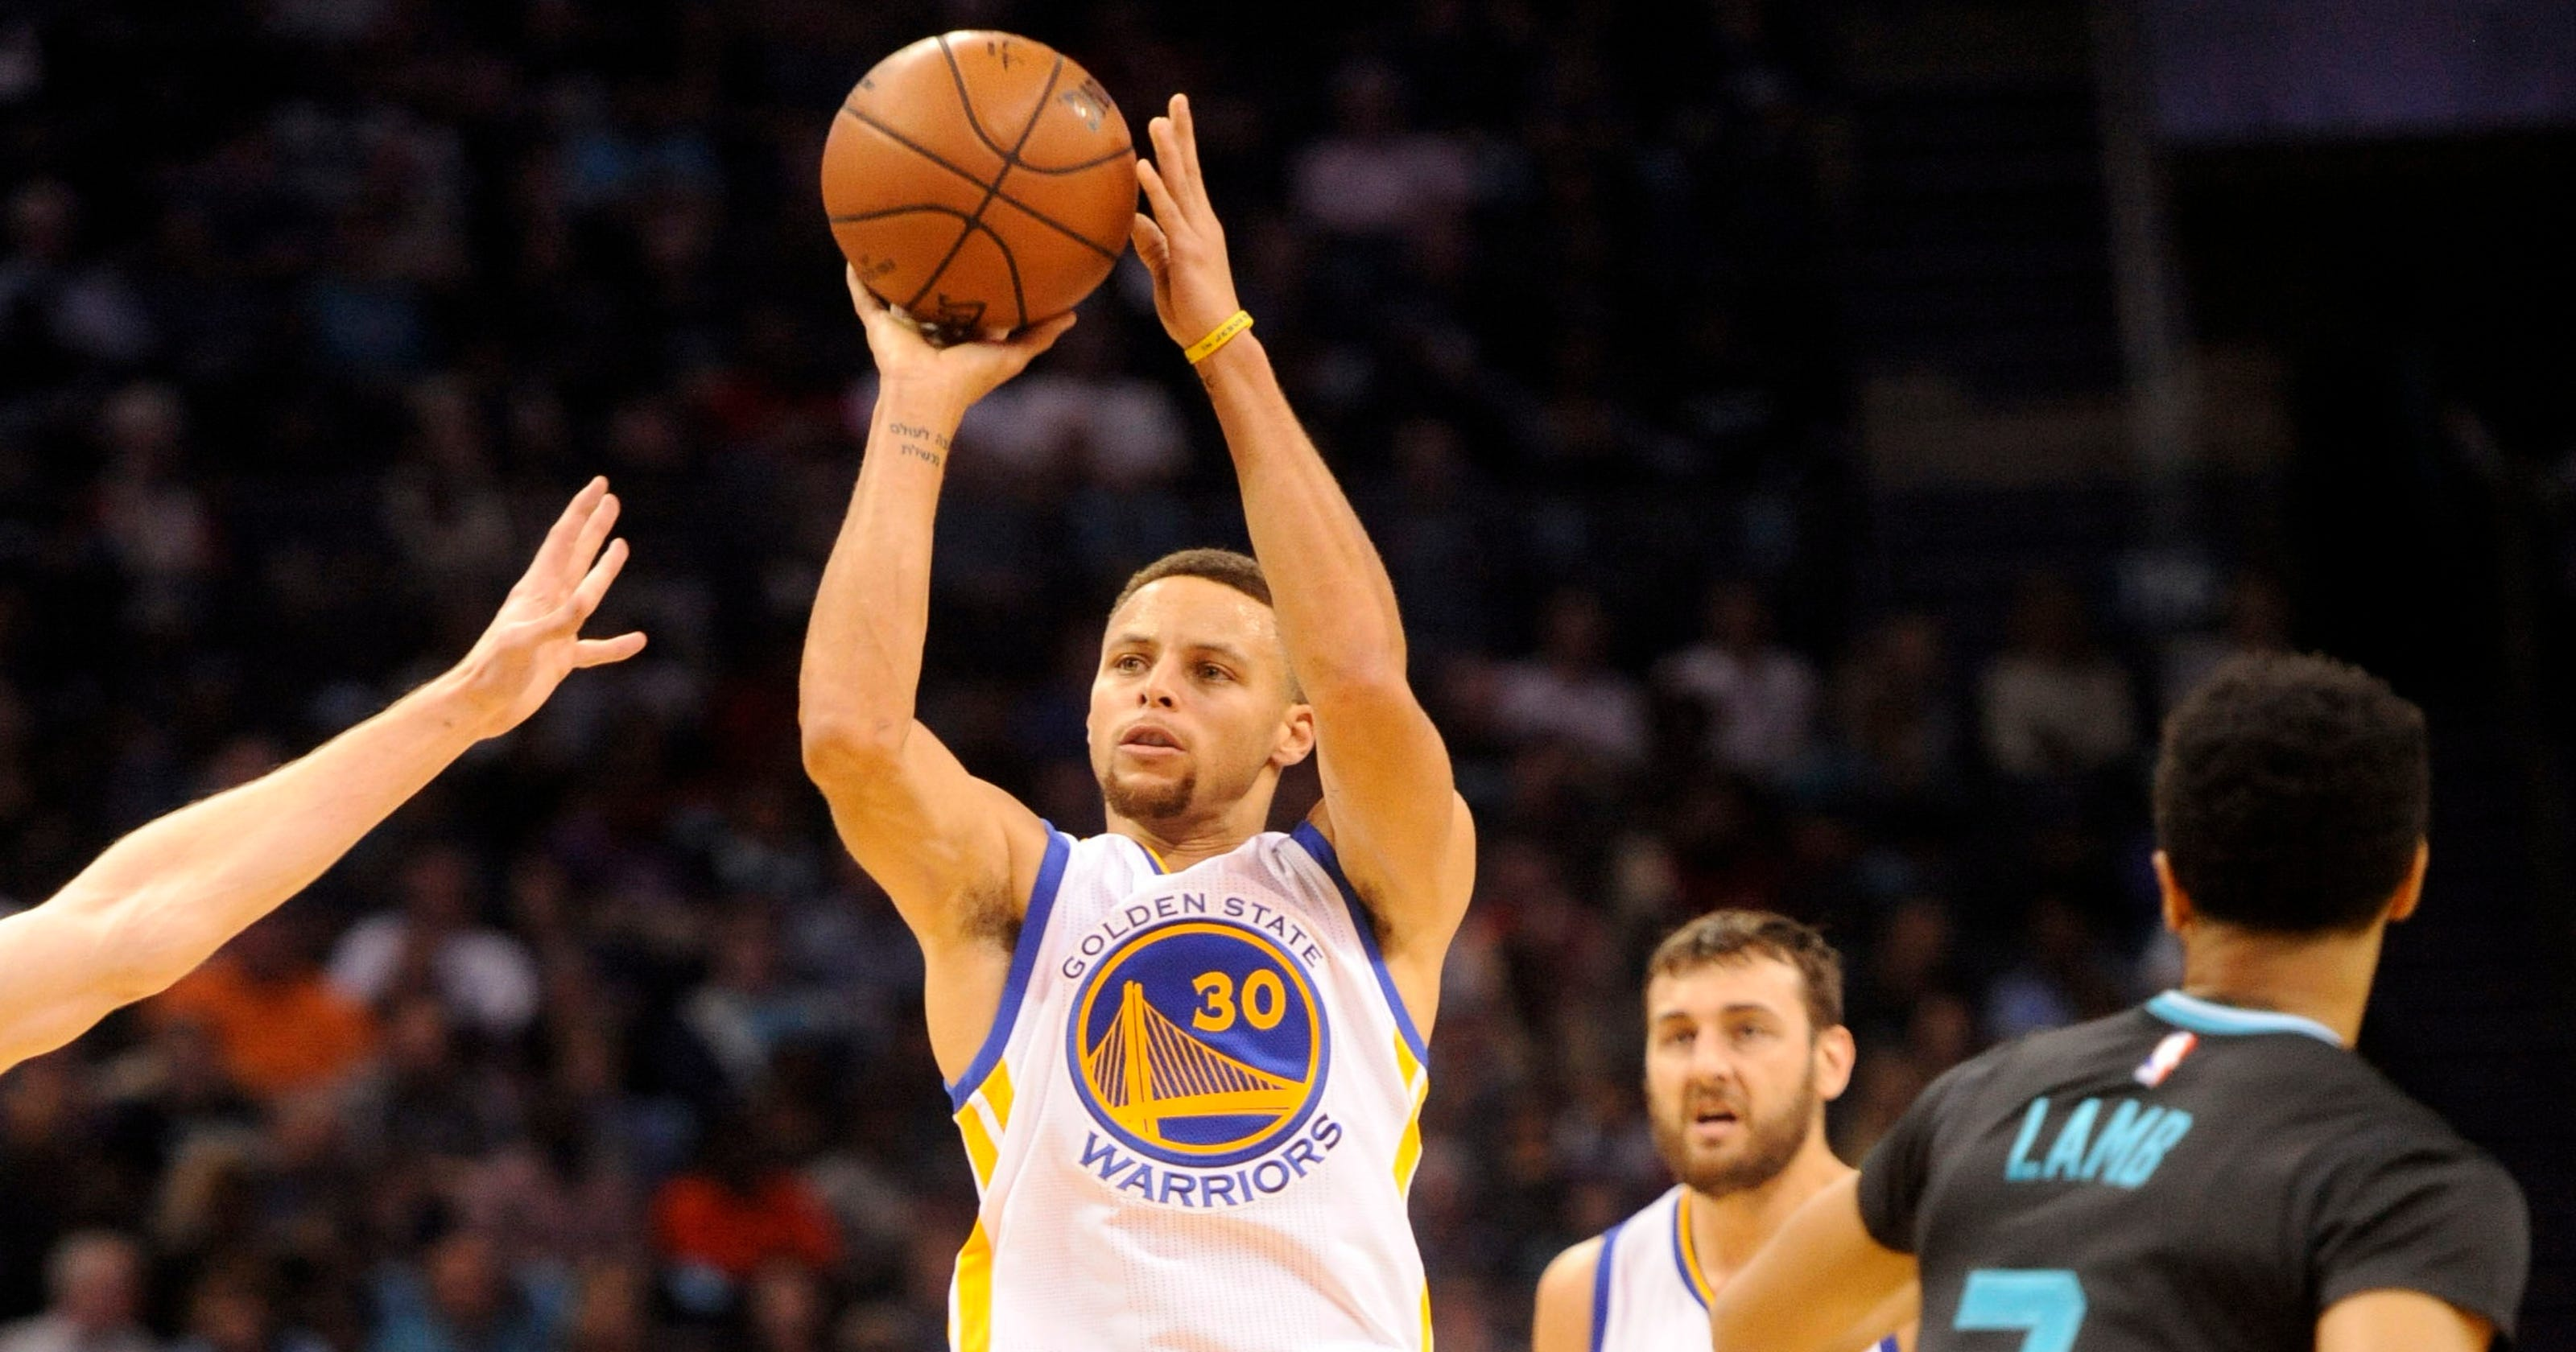 f5a6393db377 Stephen Curry catches fire to lead Warriors past Hornets for 20-0